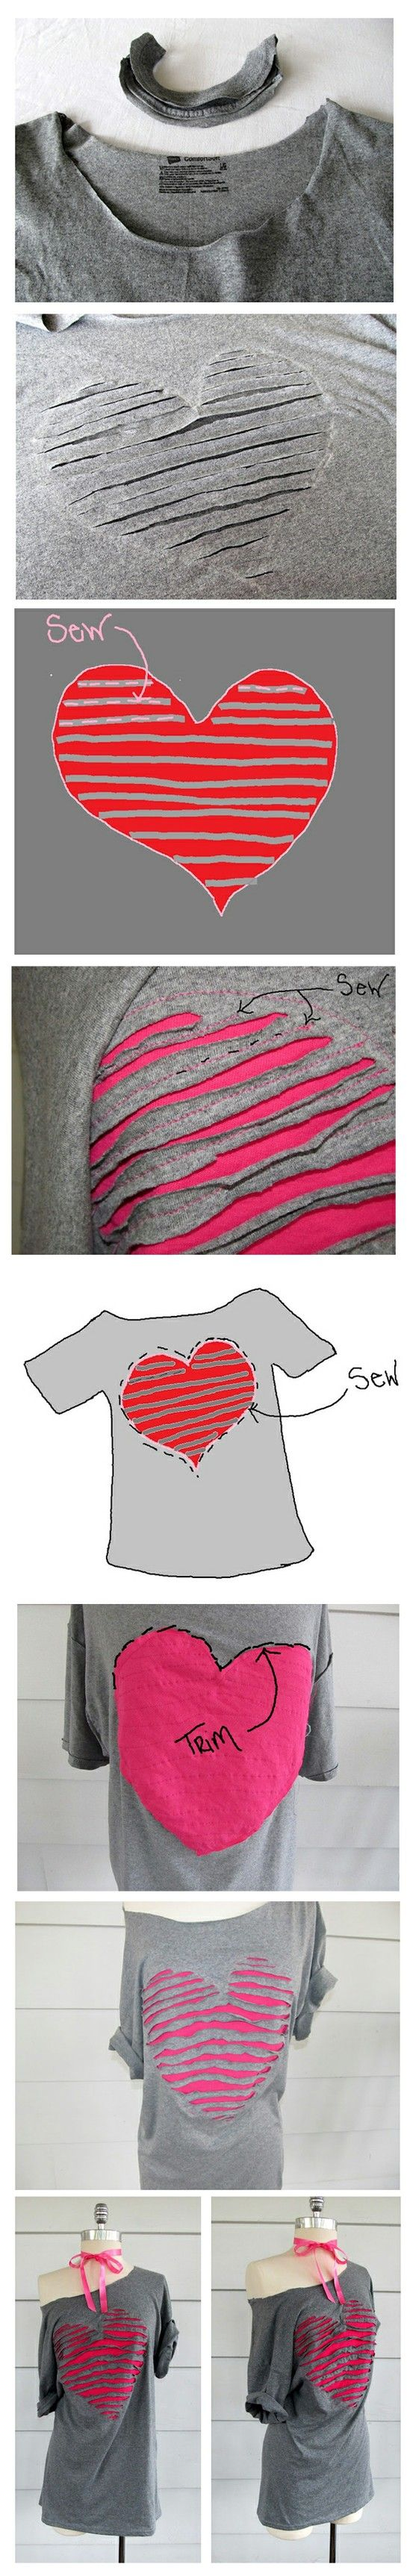 T-shirt refashion: this technique could be used on other projects too! (I would sew the lines before cutting the stripes, though)